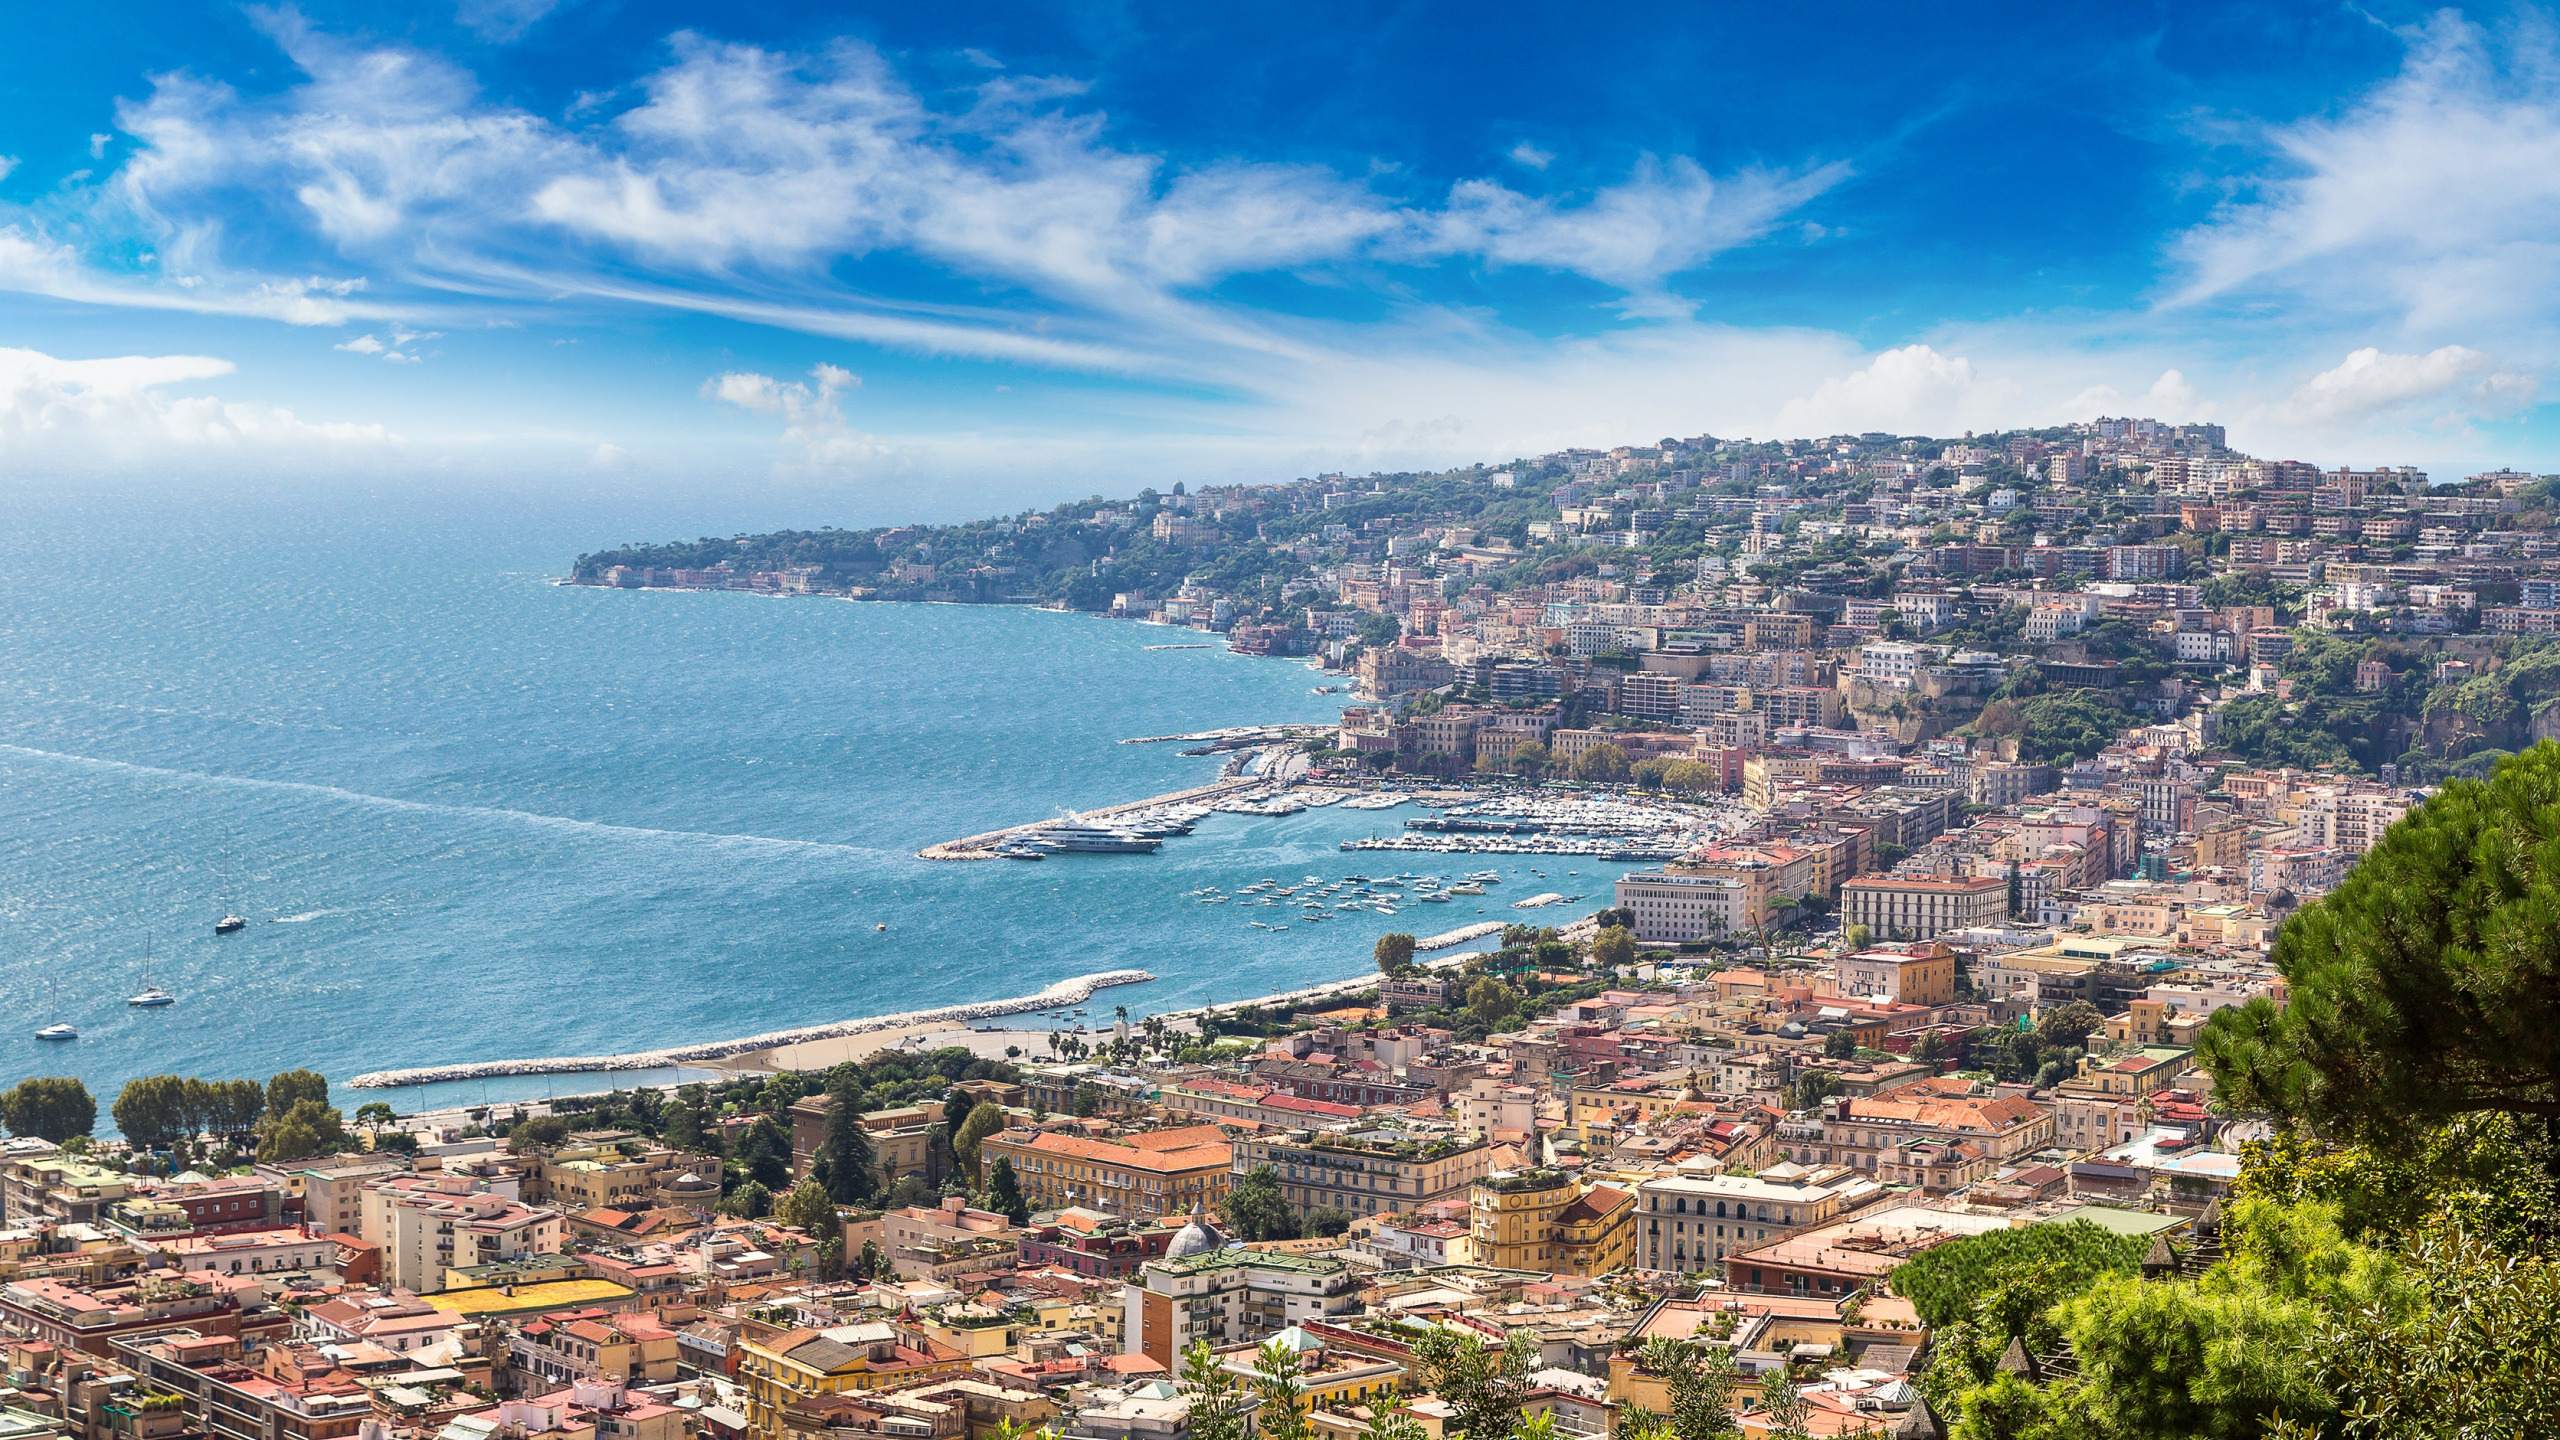 Download Wallpaper City The City Coast Italy Italy Coast Panorama Europe View Cityscape Naples Naples Travel Sorrento Section City In Resolution 2560x1440